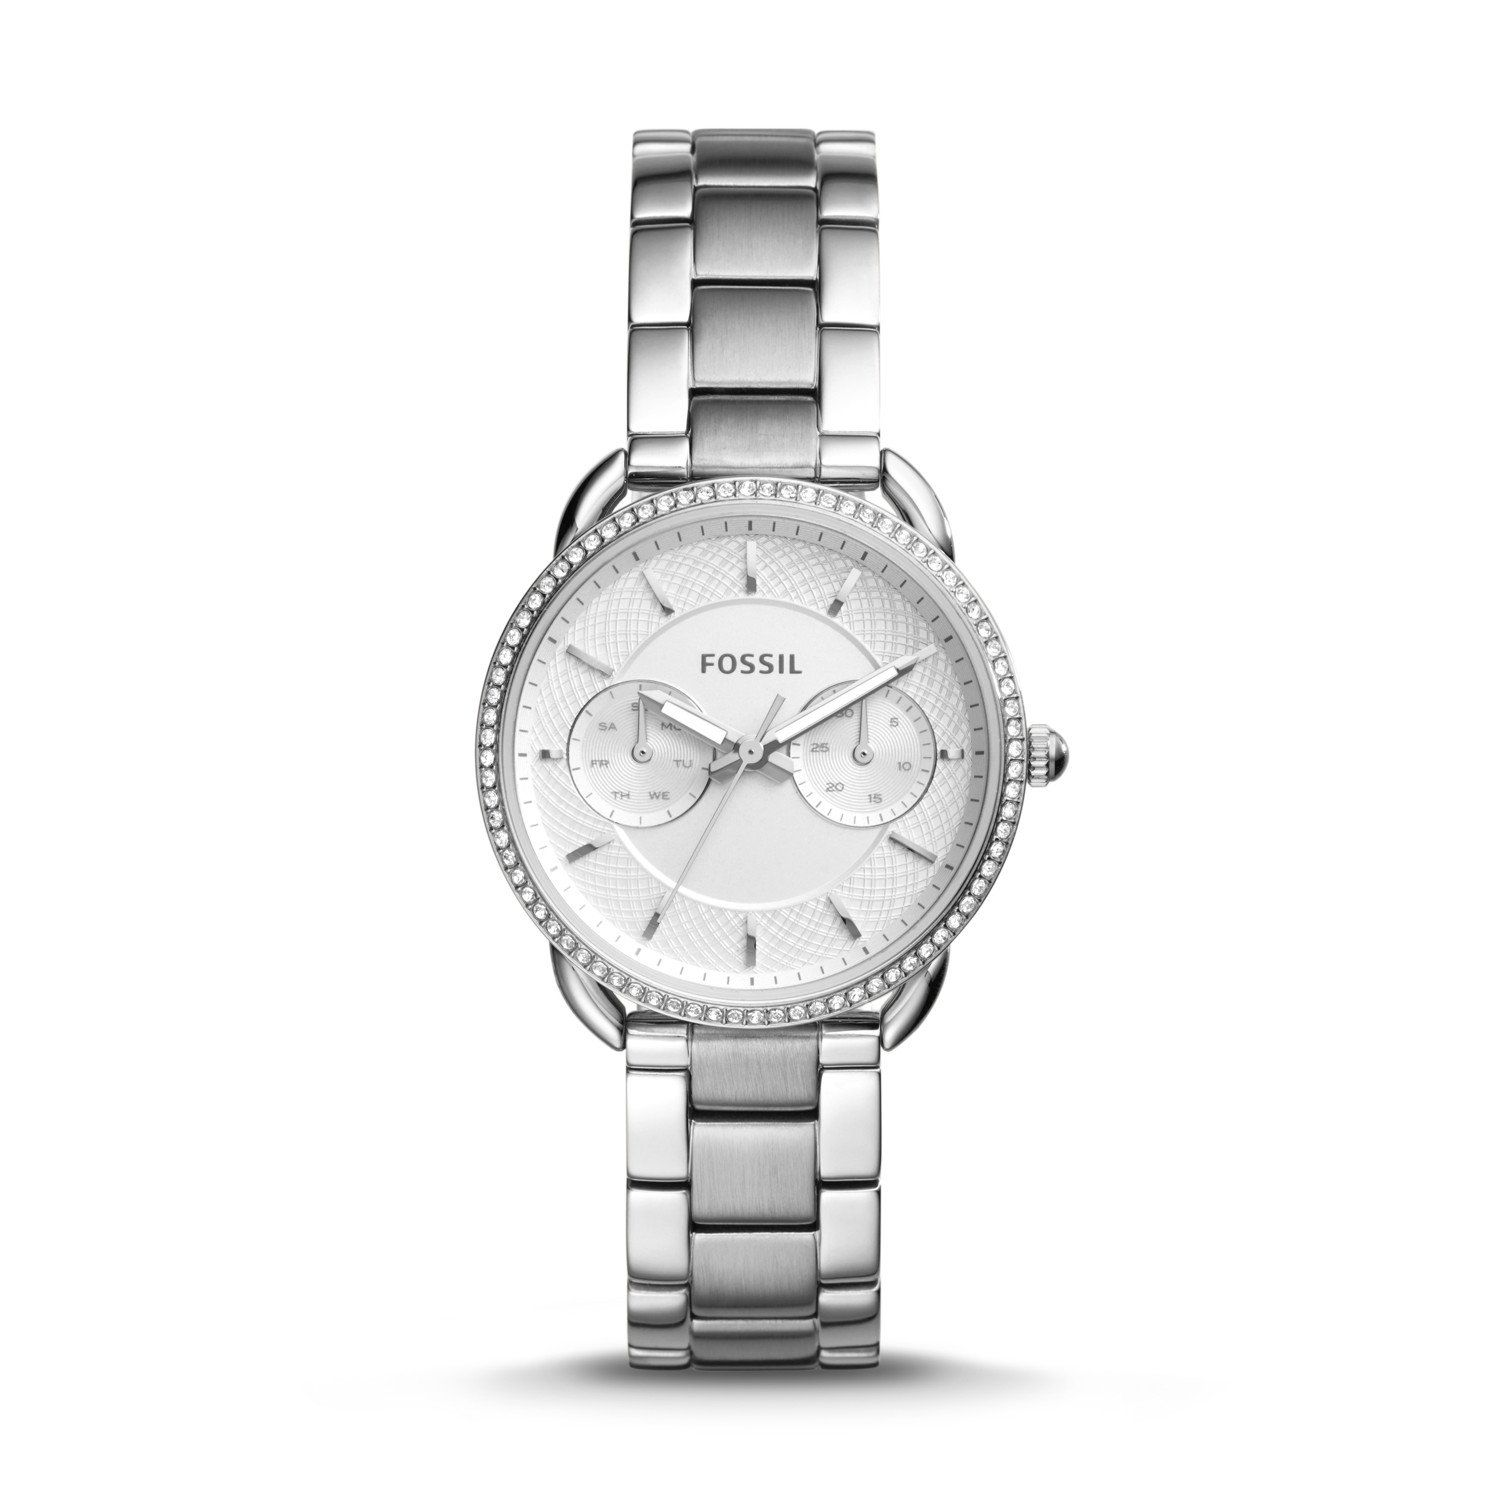 Fossil Bq1444 Silver Platinum Watch Tailor Multifunction Stainless Steel Es Fossils 1500x1500